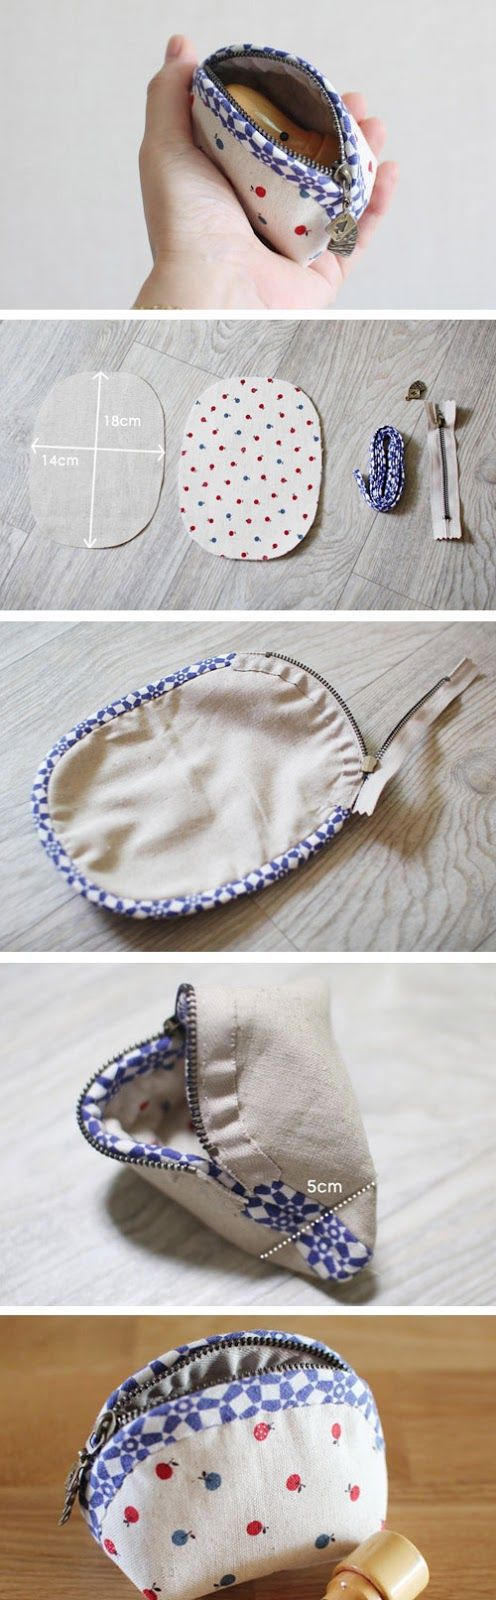 Diy Coin Purse No Sew Best 25+ Coin purse tu...